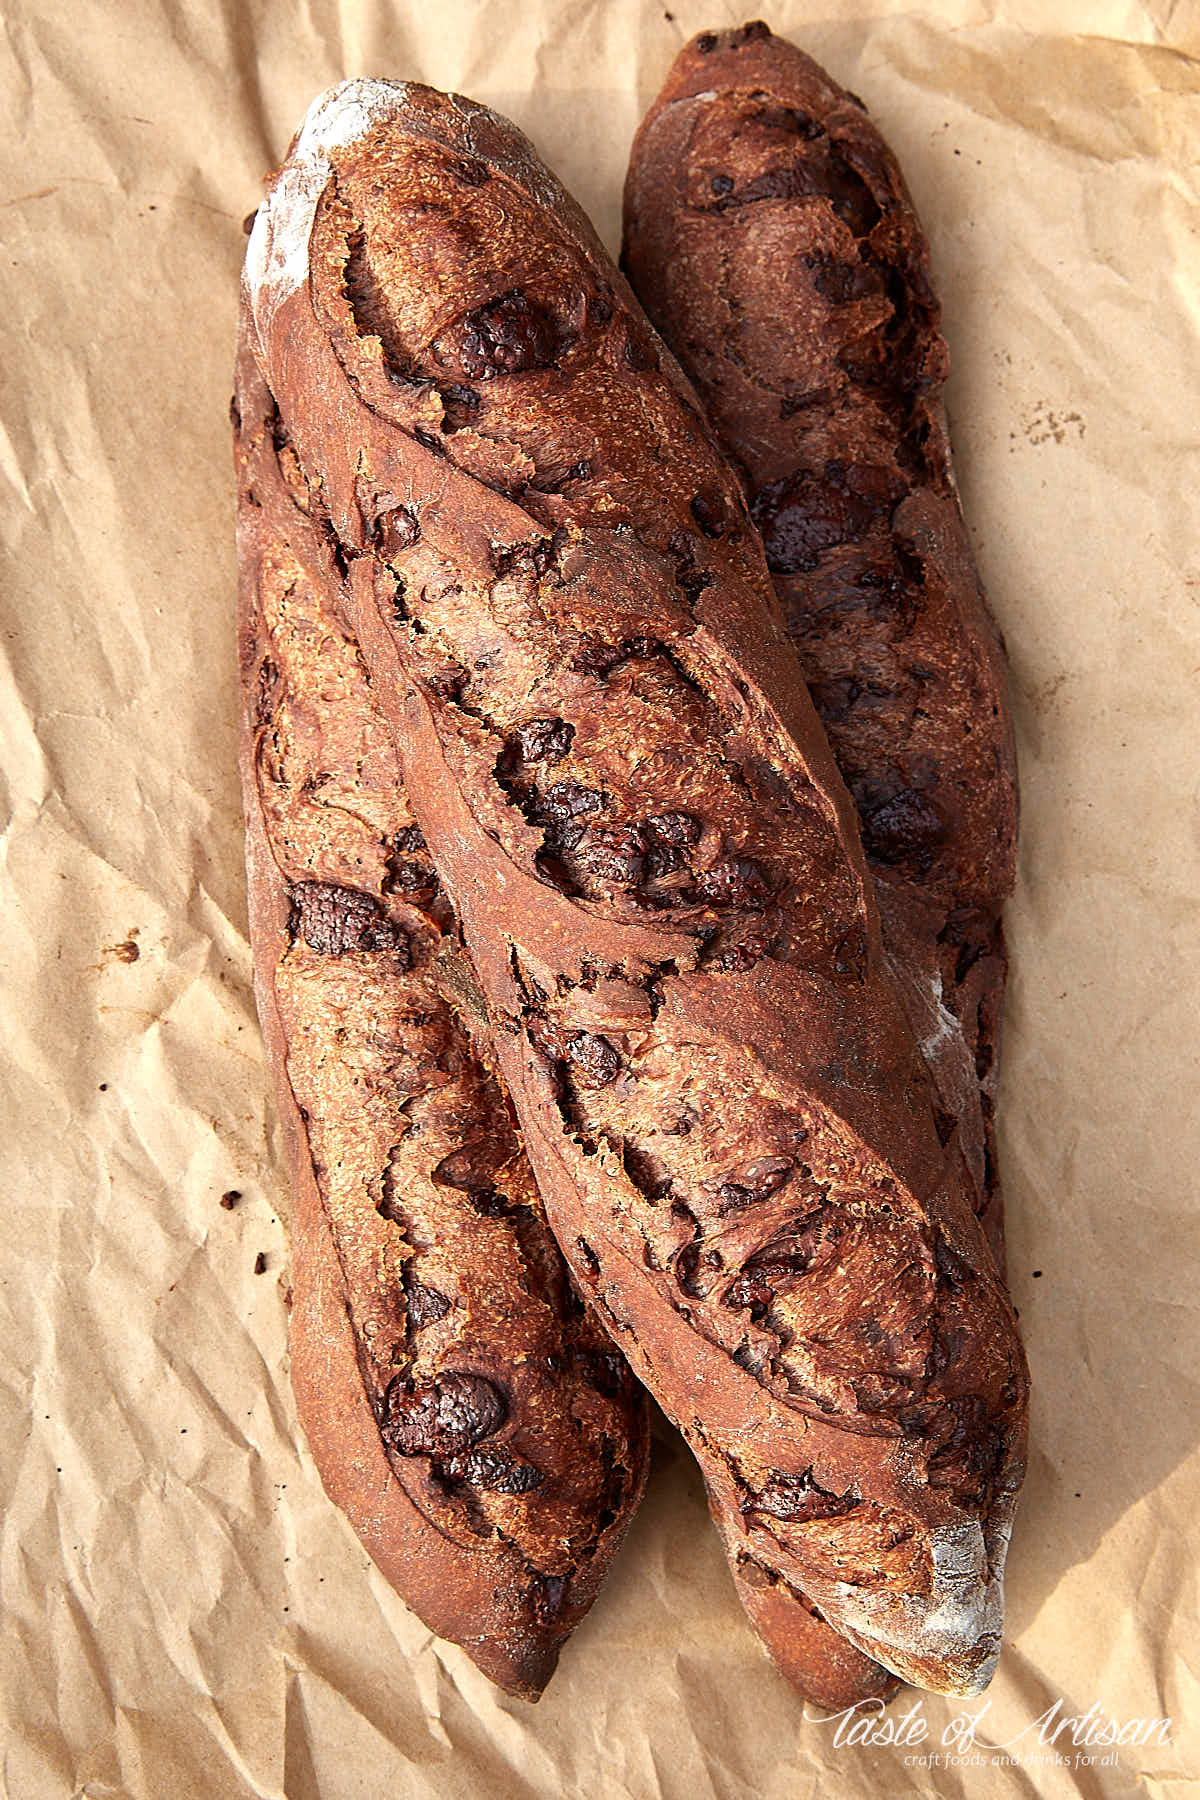 Three chocolate baguettes on a piece of brown paper.